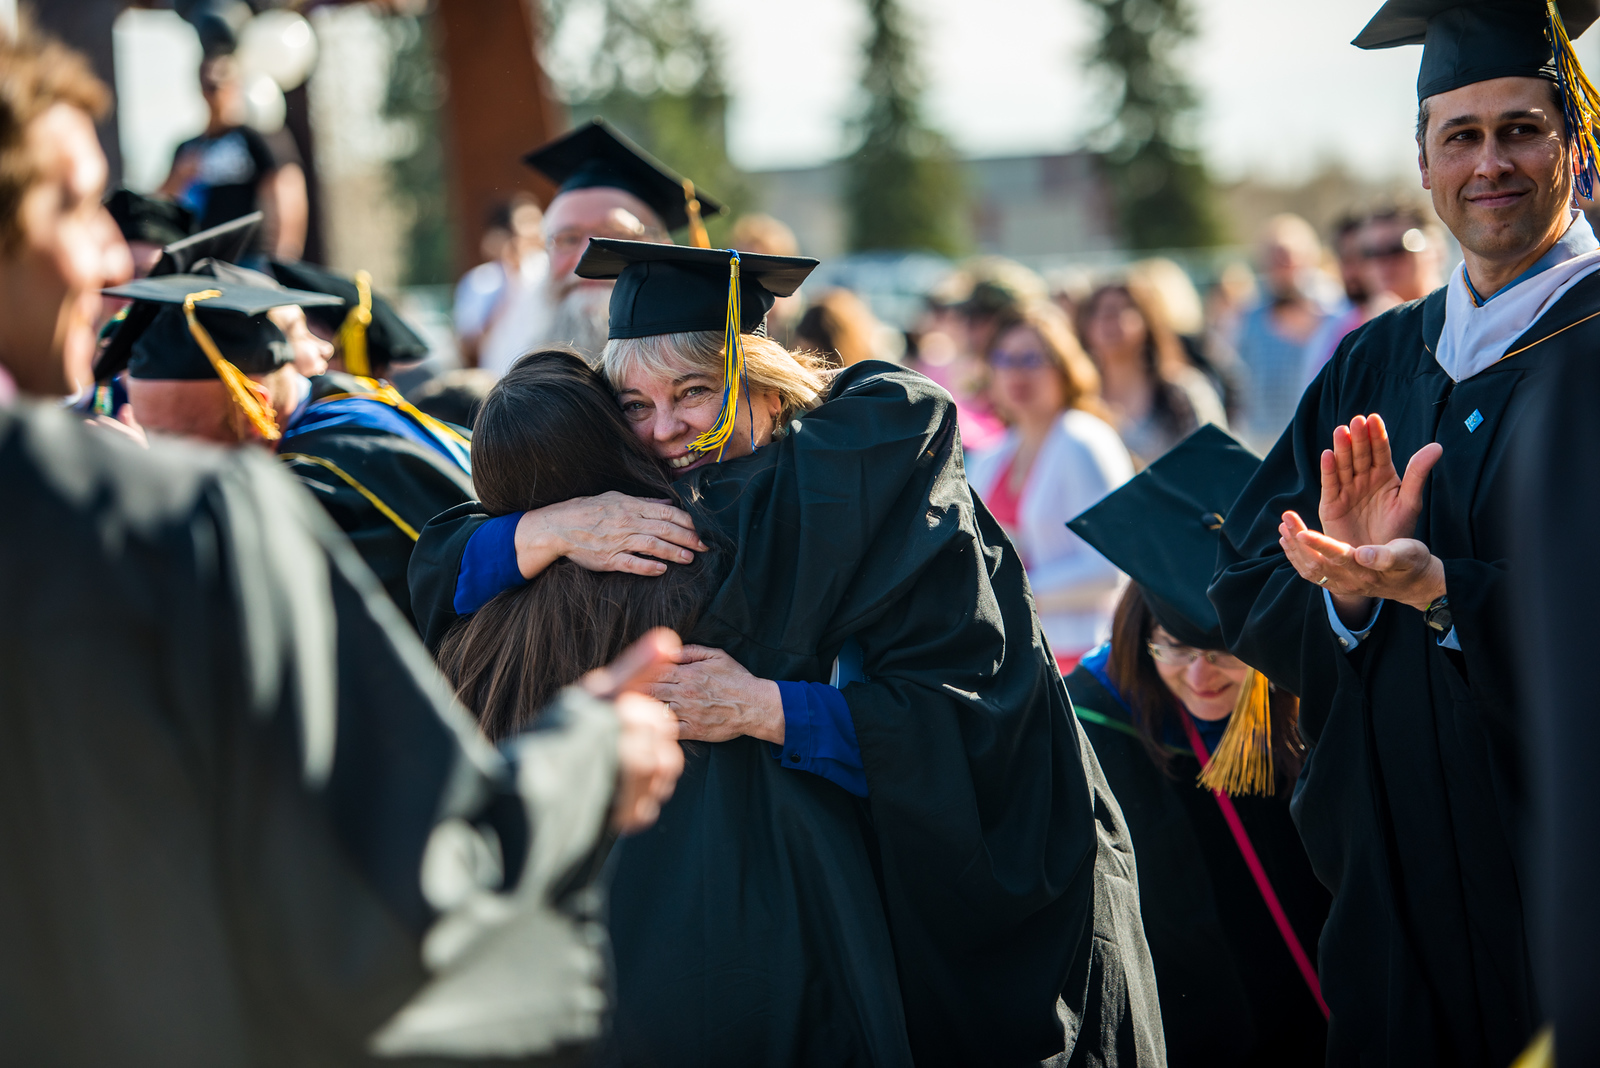 UAF Spanish instructor Kim Aragon-Stewart hugs a student following Commencement 2017.